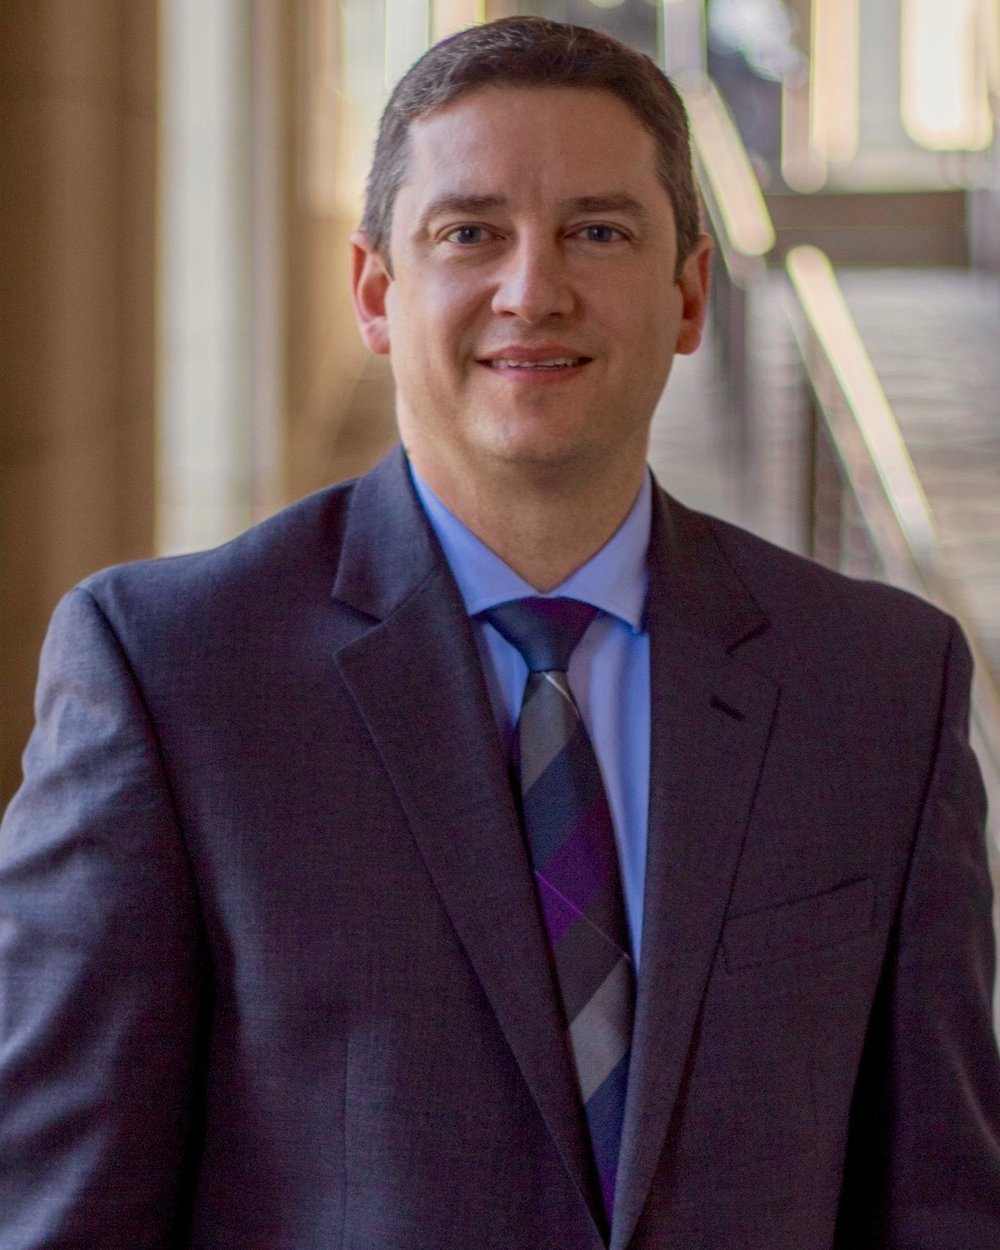 Carl Devine - Attorney at law focusing on family law and founding partner of Devine & Dominick, PLLC.